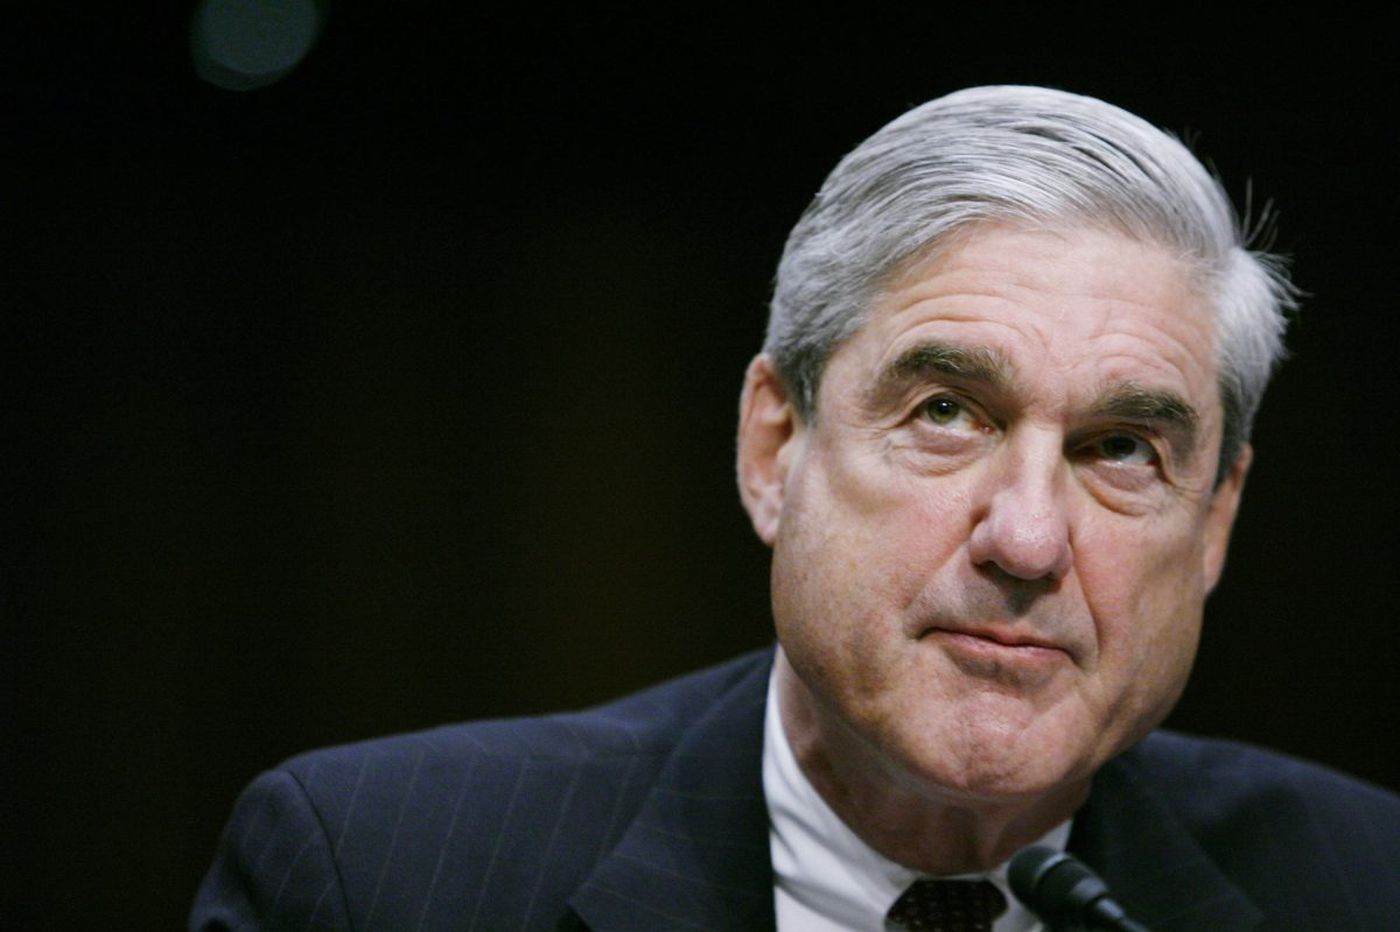 Legal advice for President Trump: Interrogation isn't the time to judge Mueller's fairness | Opinion